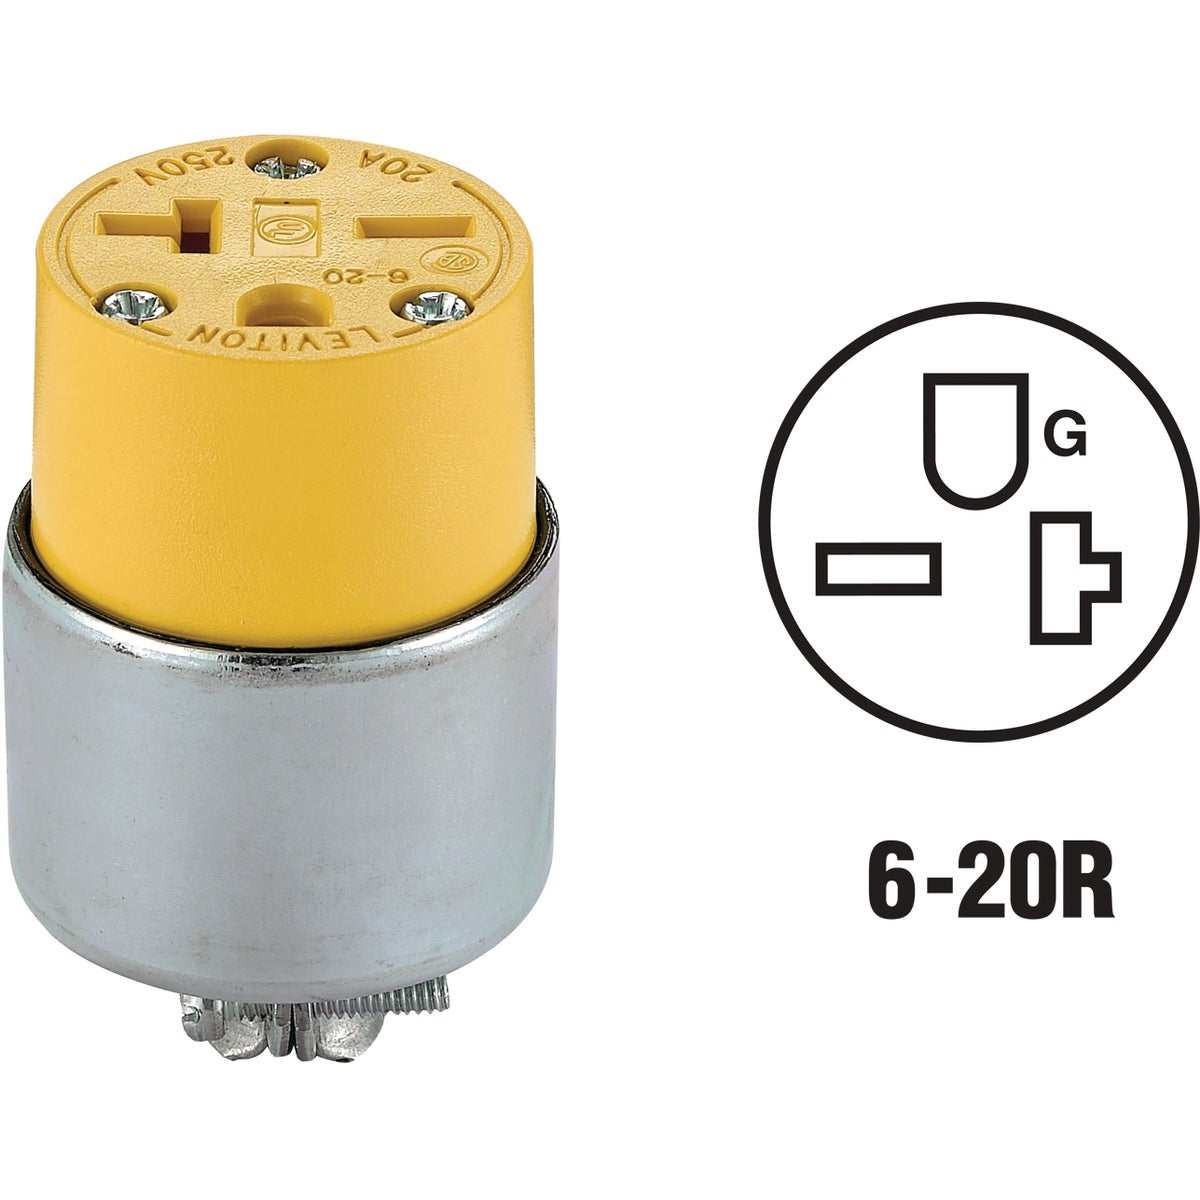 YEL ARMORED CONNECTOR - 620CA by Leviton Mfg Co